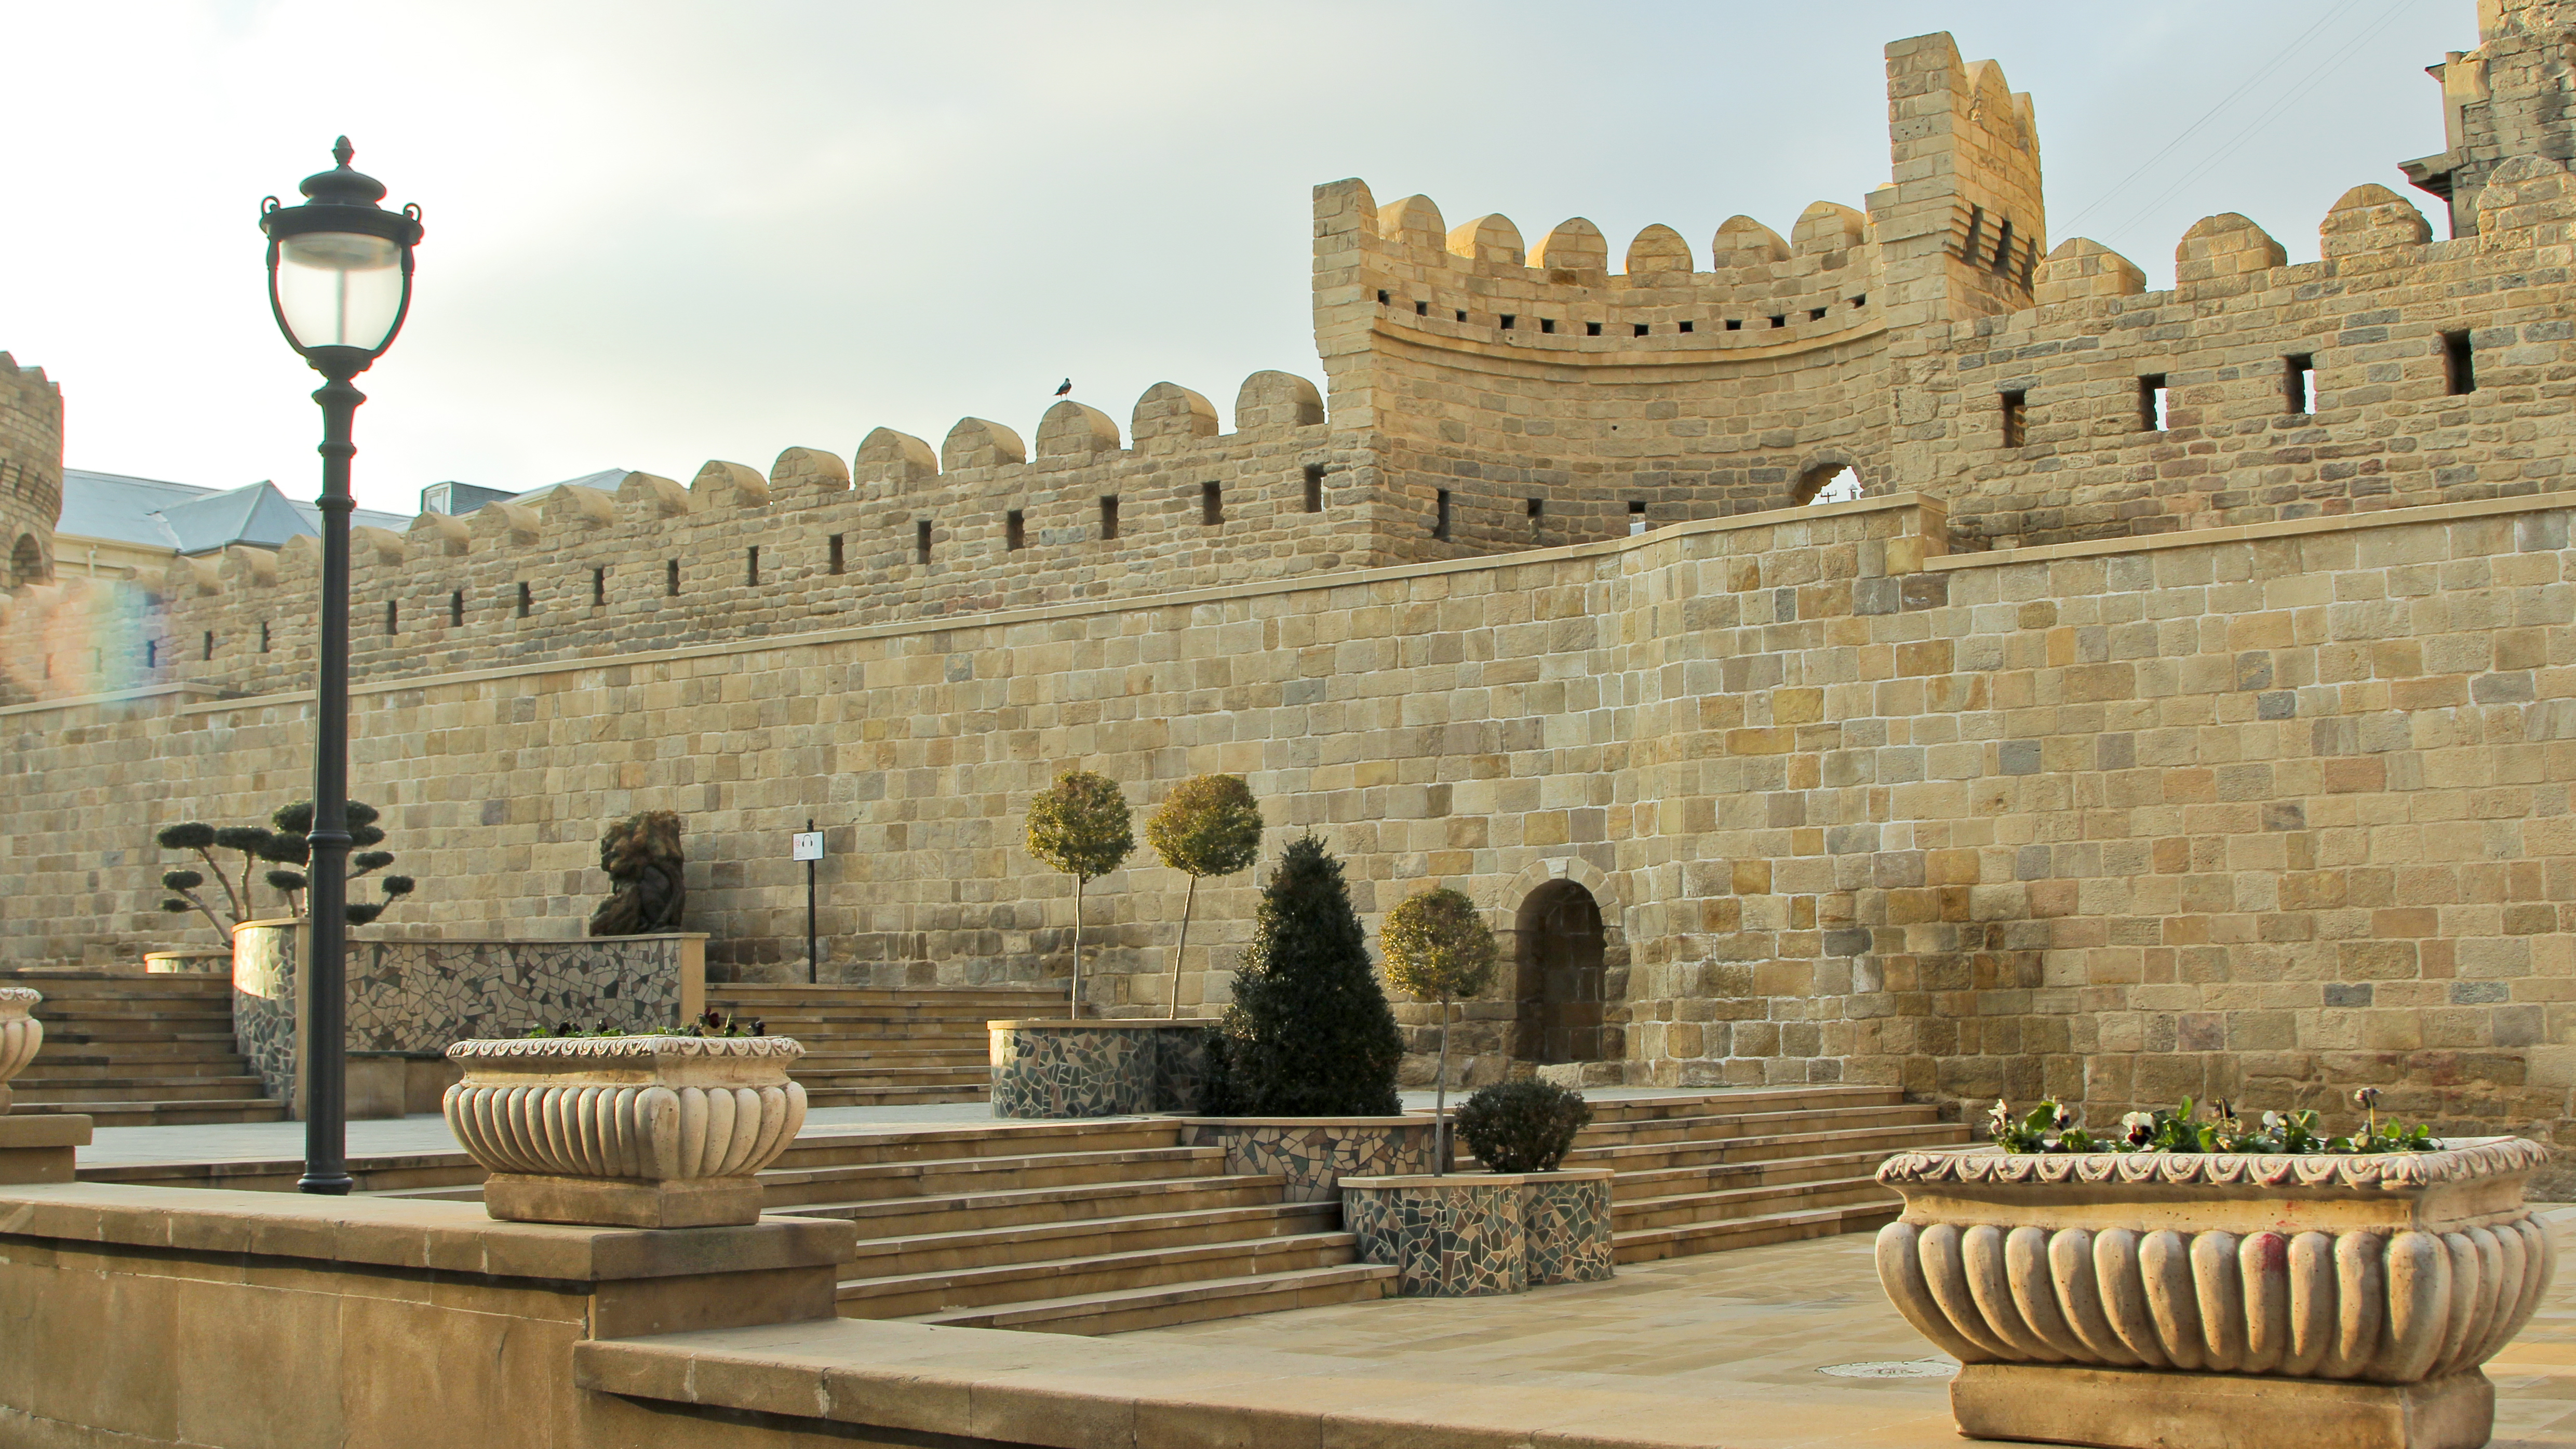 The history of Azerbaijan since ancient times 23